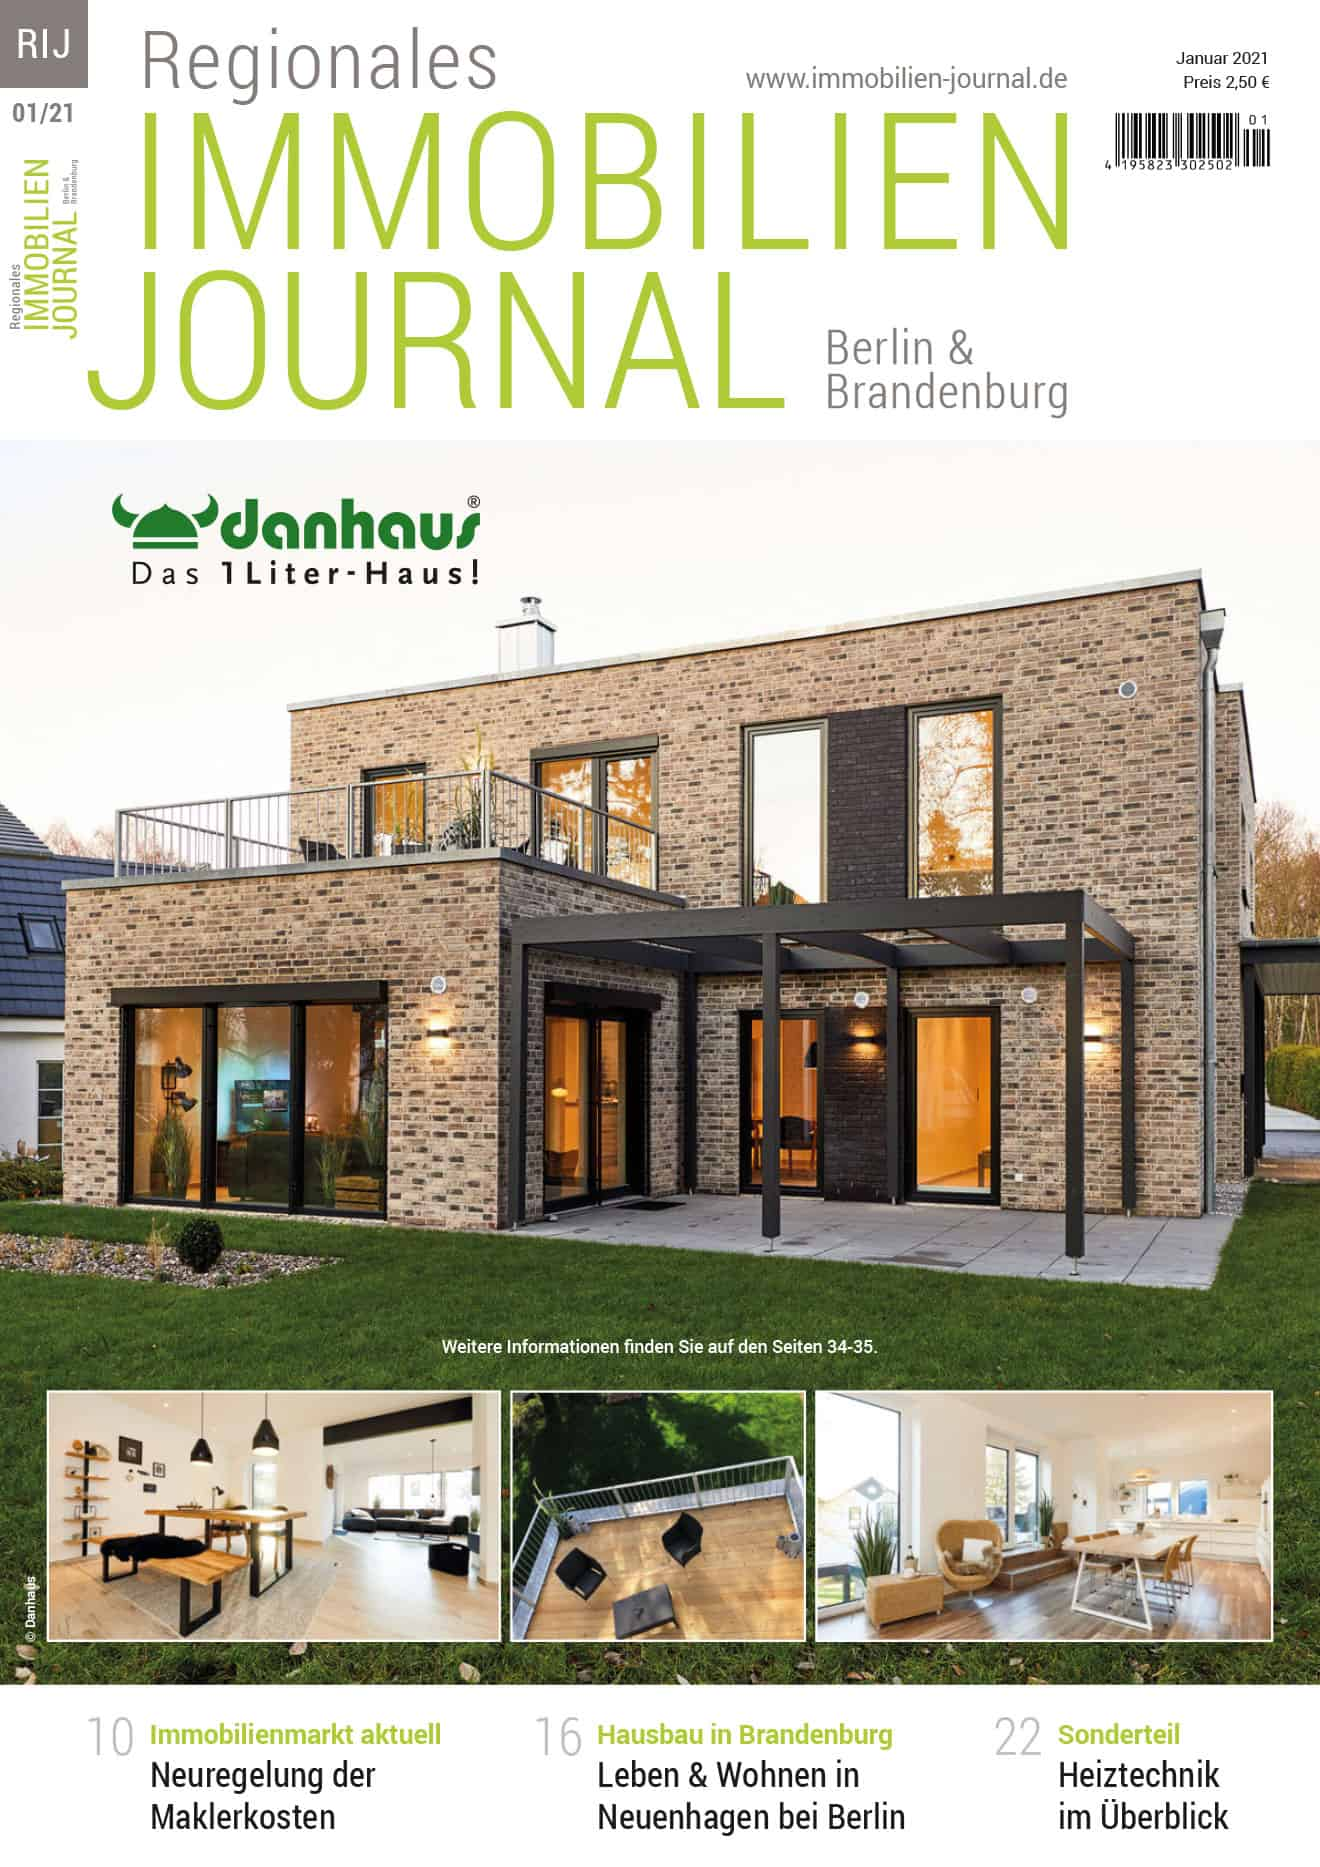 Regionales Immobilien Journal Berlin & Brandenburg 01-2021